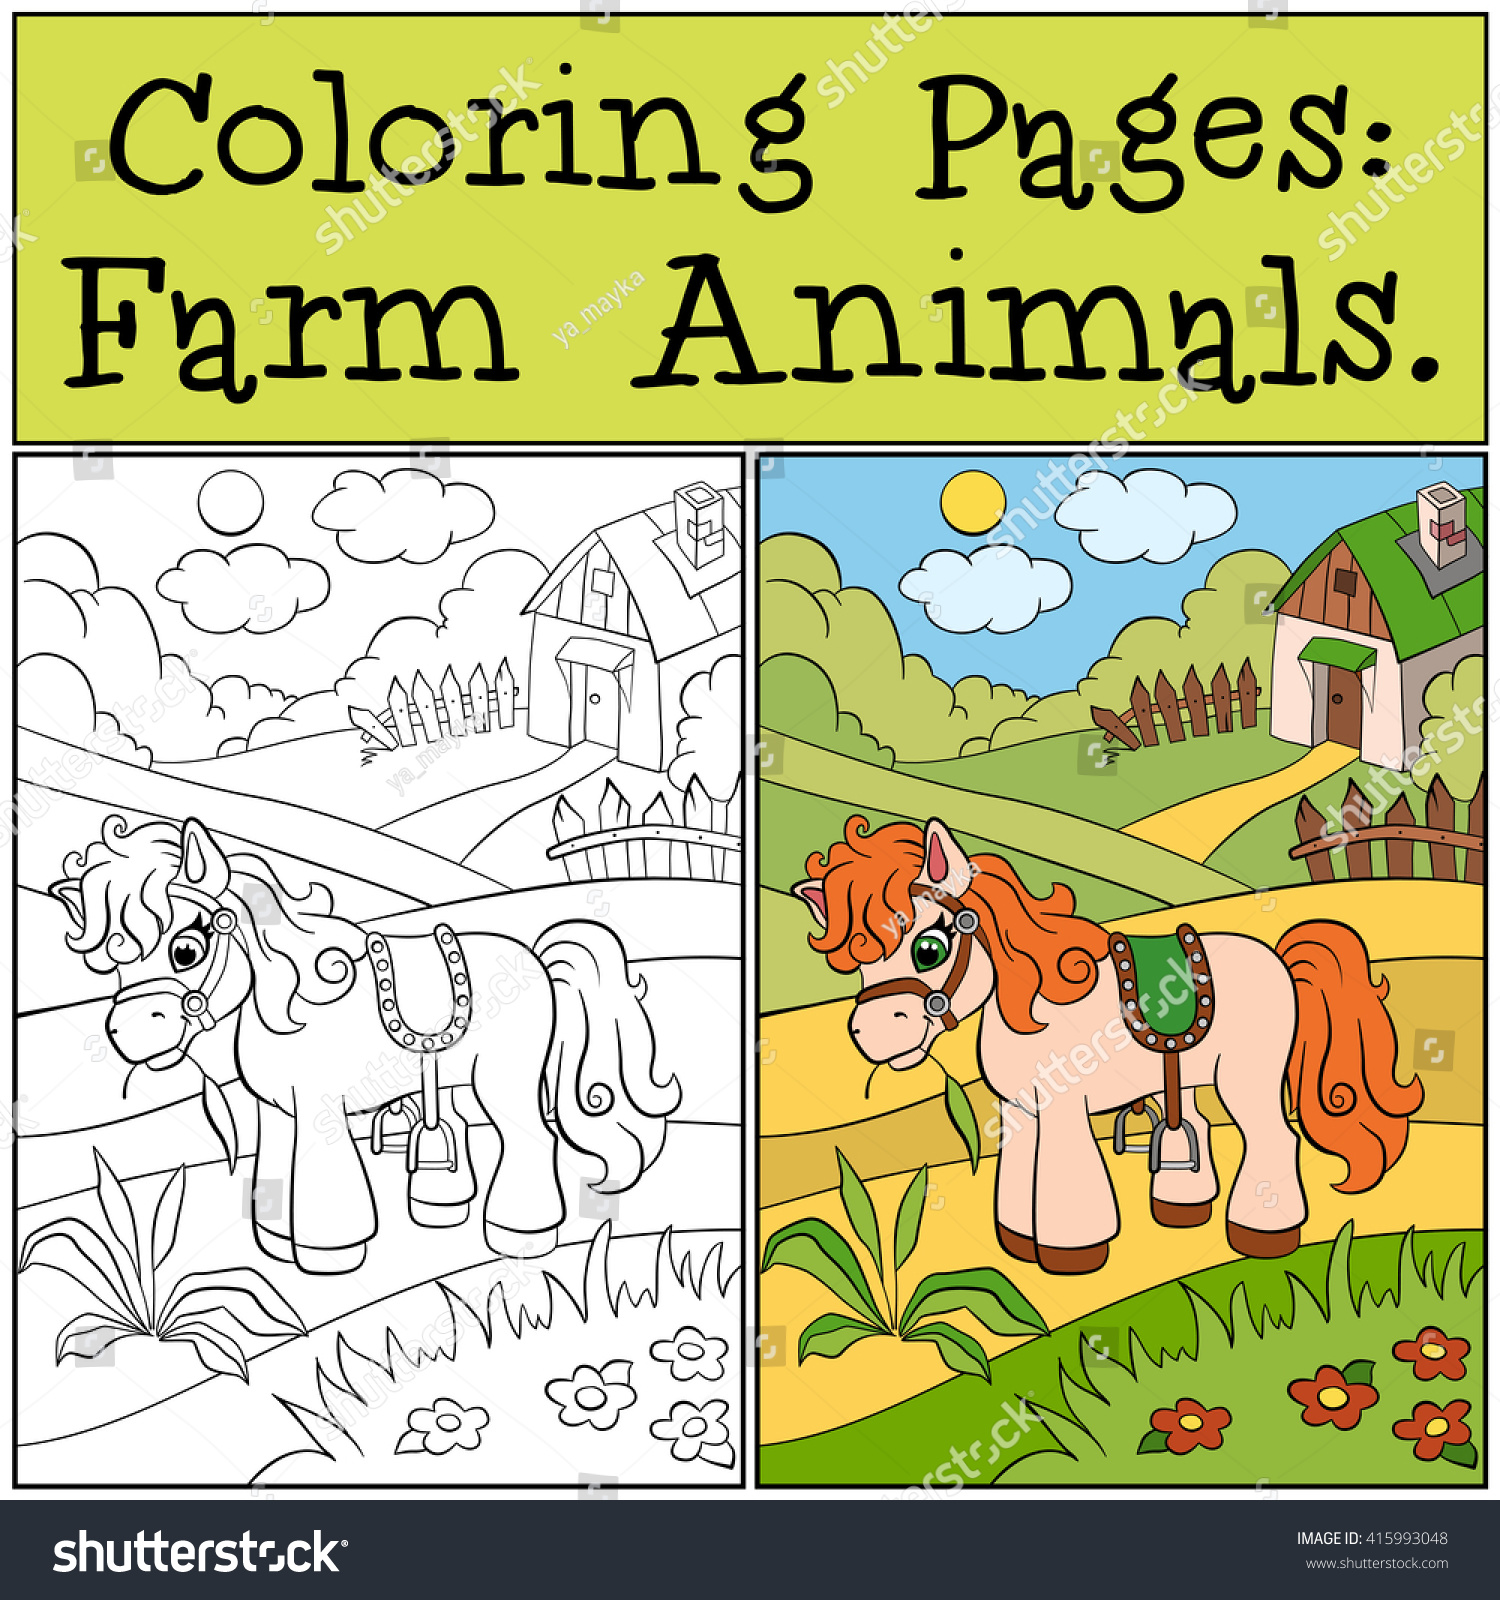 Coloring Pages Farm Animals Little Cute Stock Vector 415993048 ...